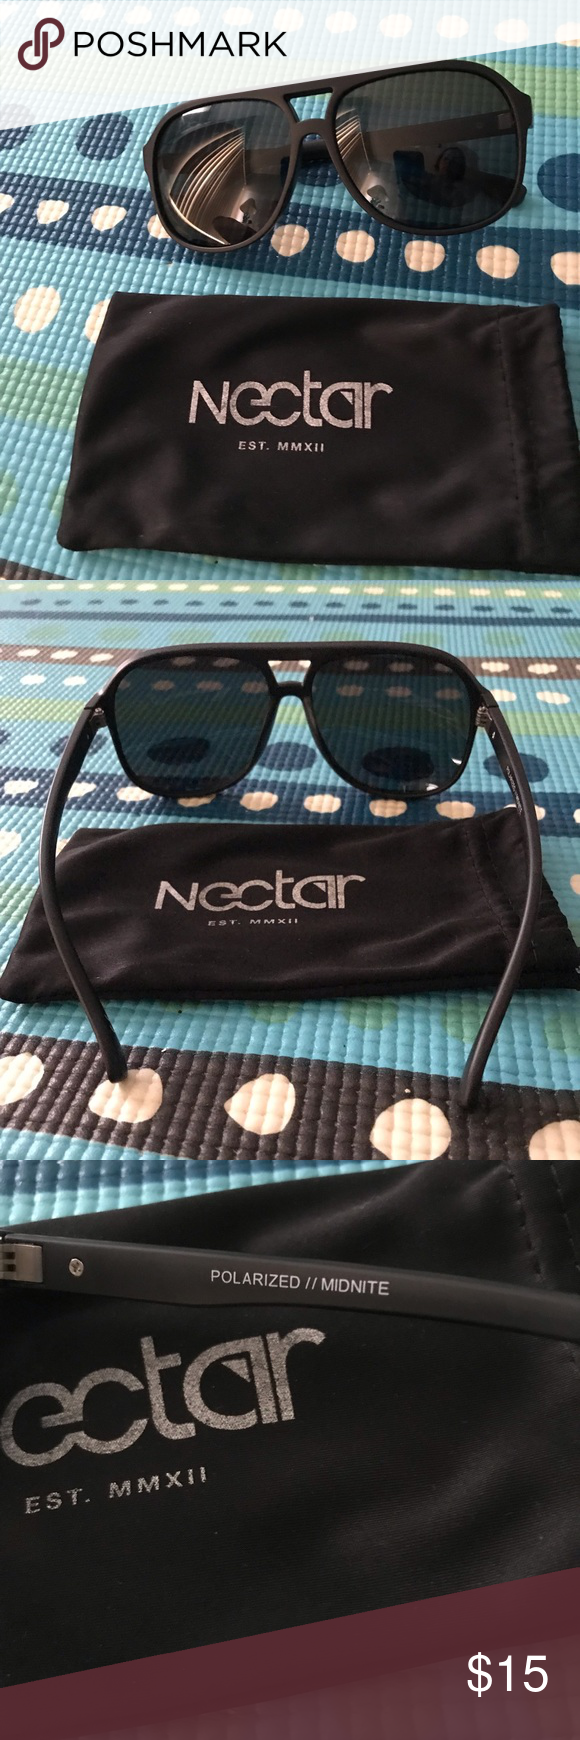 70d7ee2af7 Nectar Sunglasses Nectar Sunglasses 🕶 Polarized • Called Midnite • Never  used • Comes with cloth case nectar Accessories Sunglasses